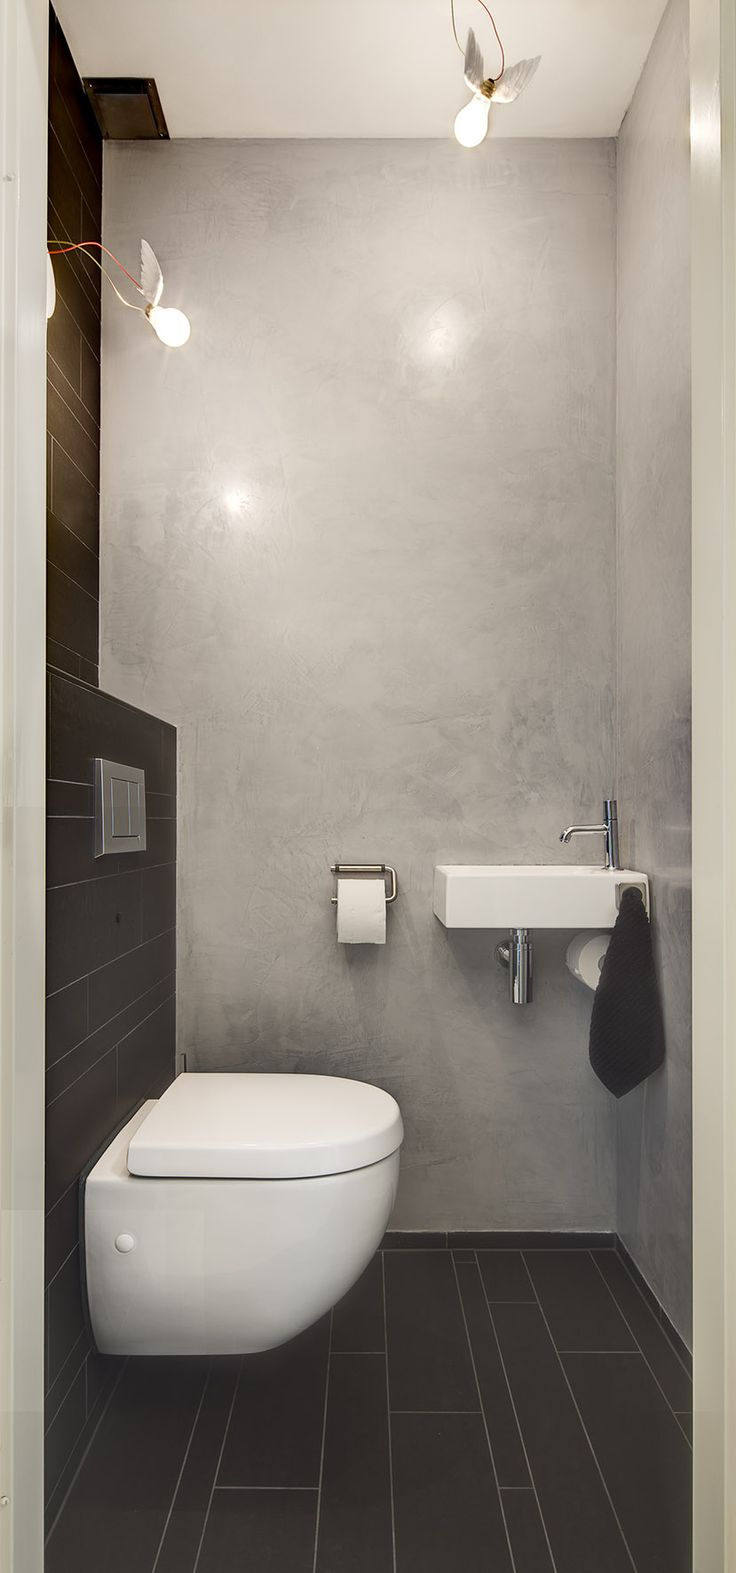 BETON CIRE / ABGEFAHRENE LAMPEN * This small bathroom is designed efficiently thereby created a great effect. The bathroom is equipped with all facilities: toilet, sink, shower and storage. #bathroomdecorideaas #bathroomsets